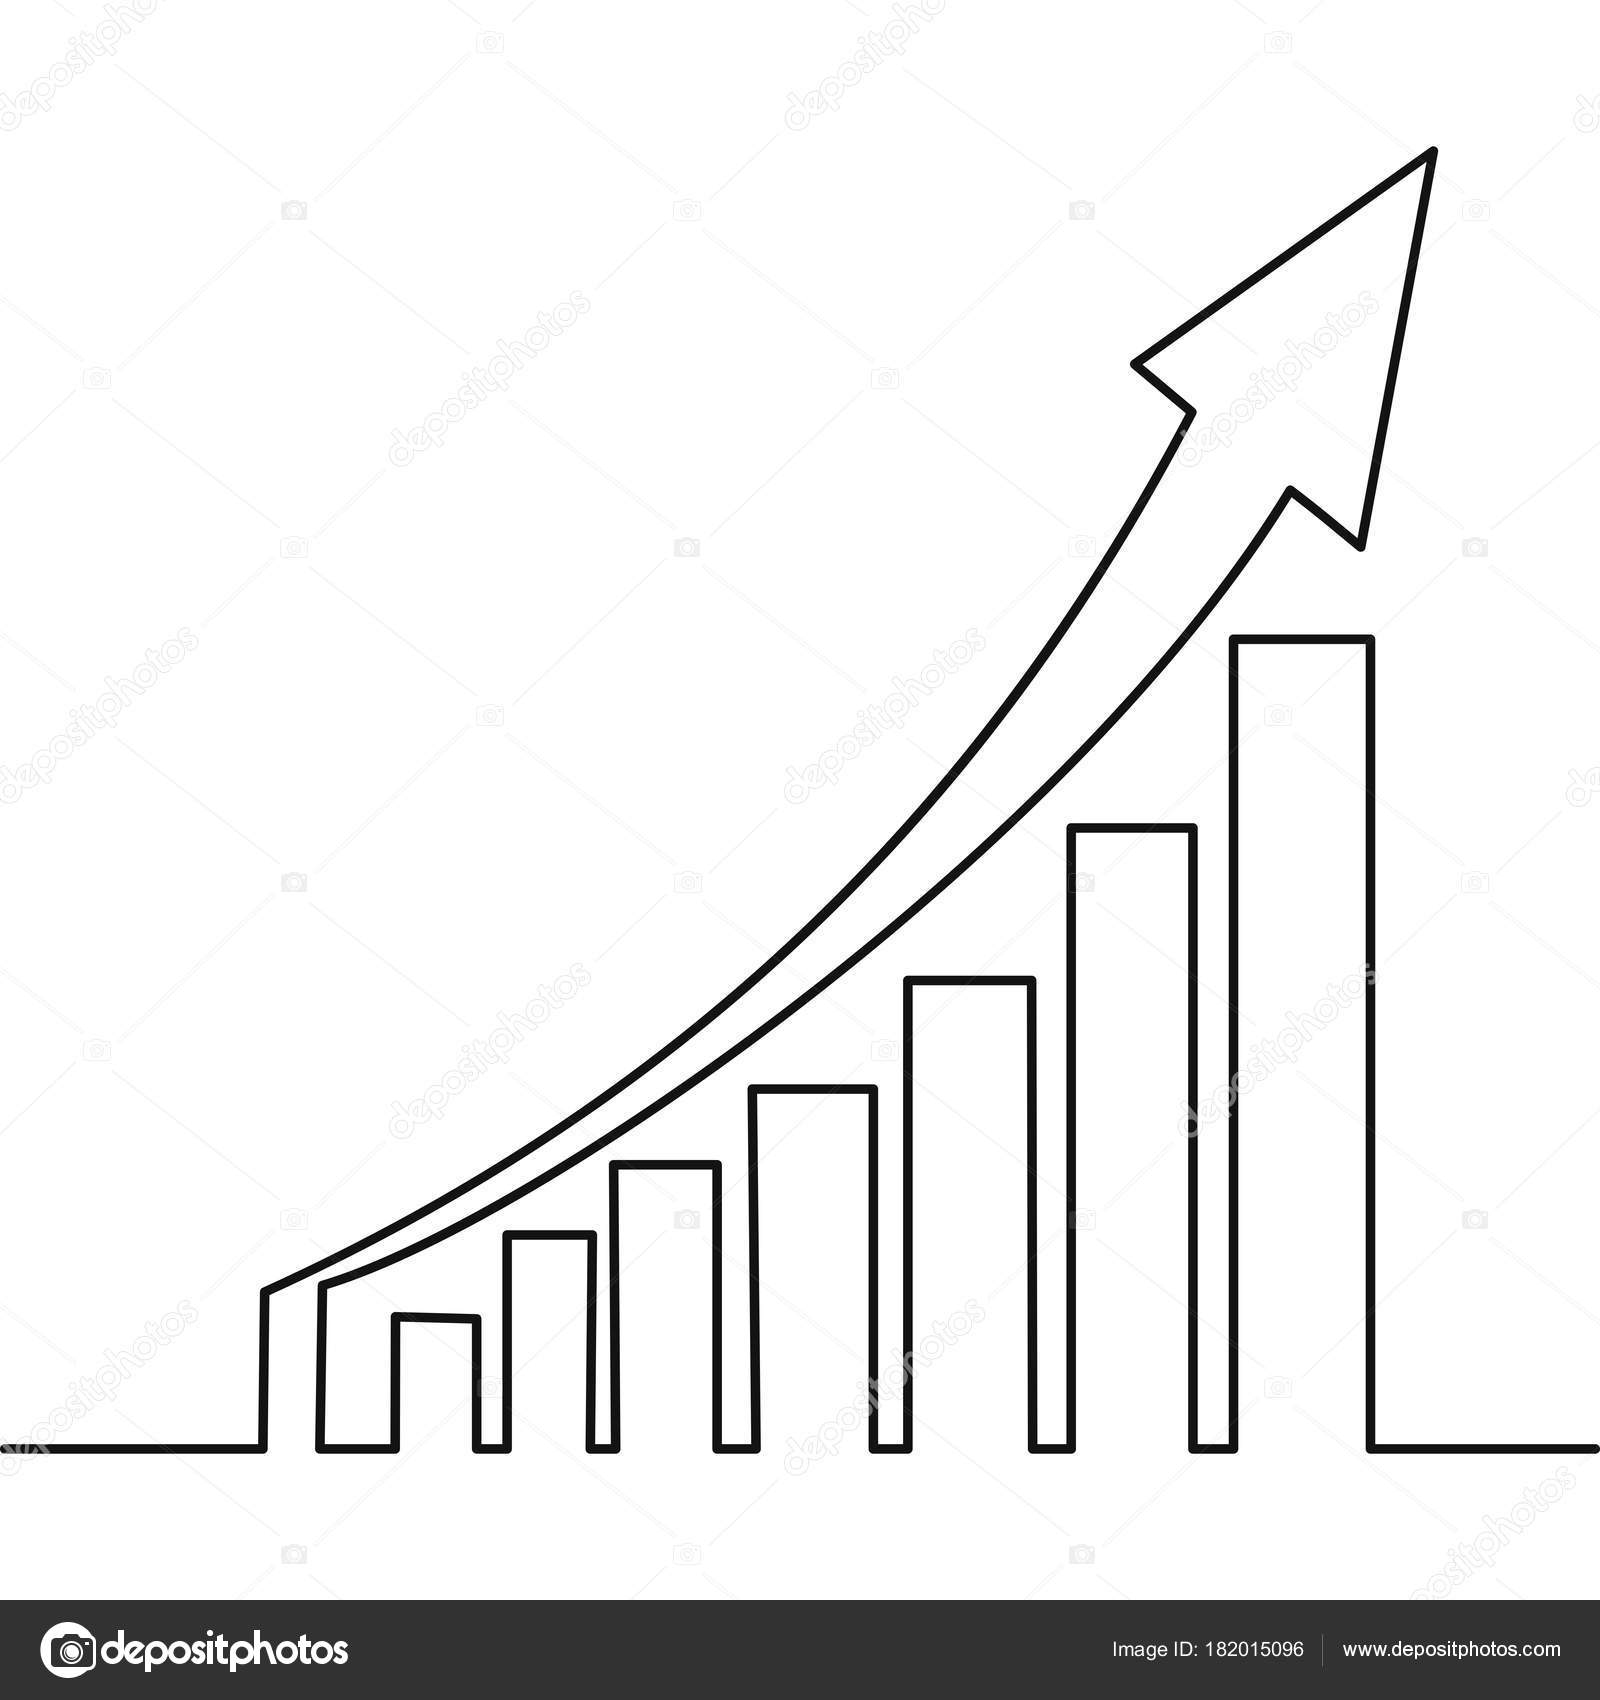 hight resolution of one continuous line drawing of graph icon isolated stock vector